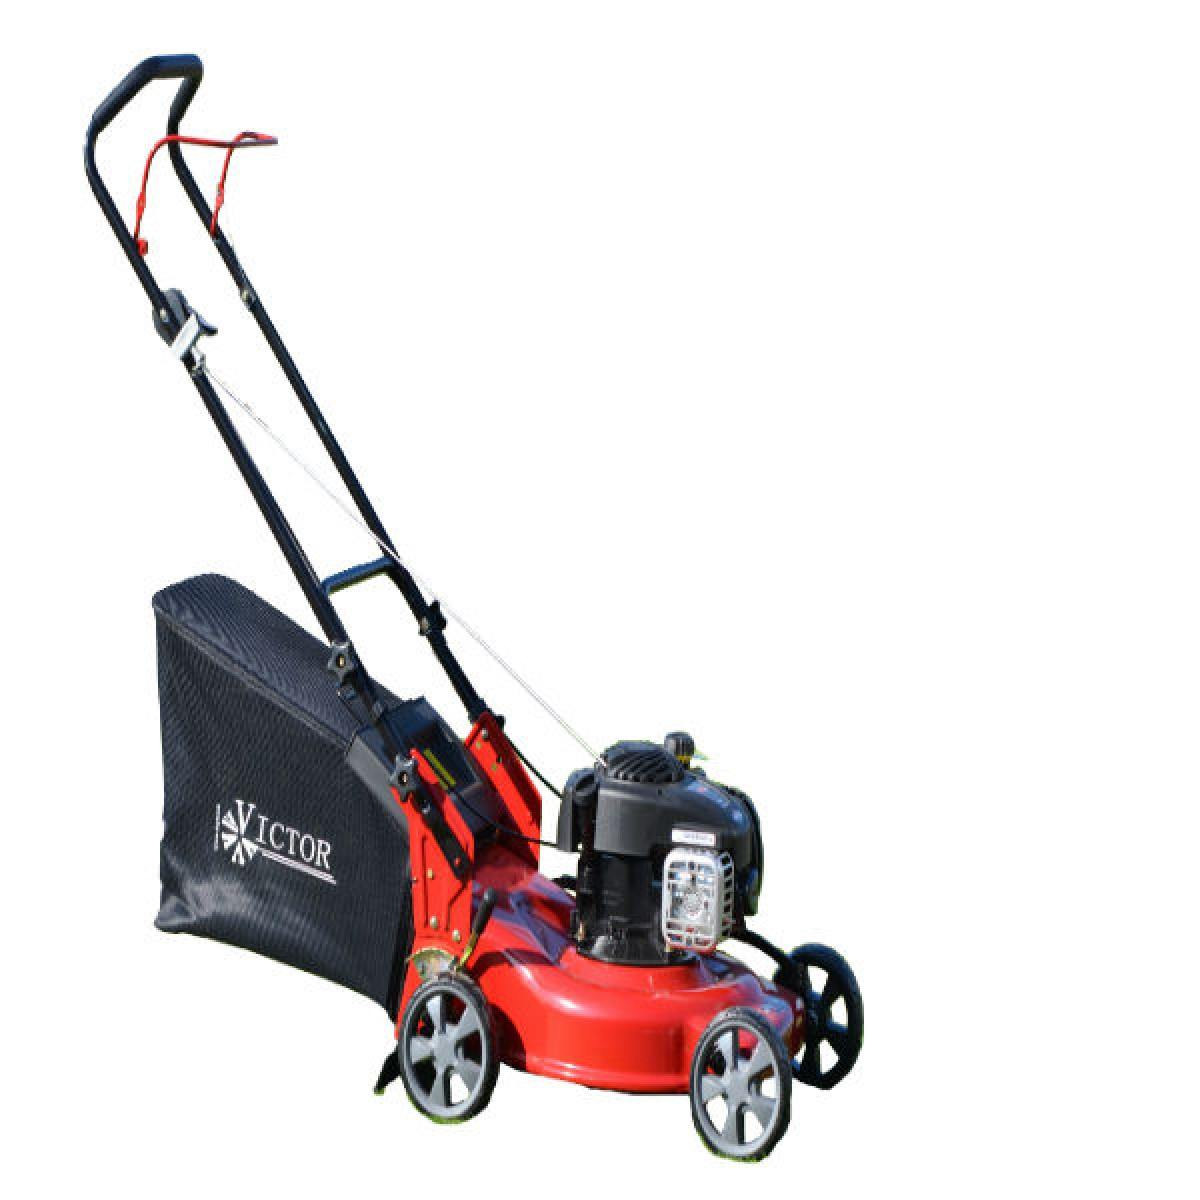 victor petrol push mower briggs stratton 450 series engine. Black Bedroom Furniture Sets. Home Design Ideas